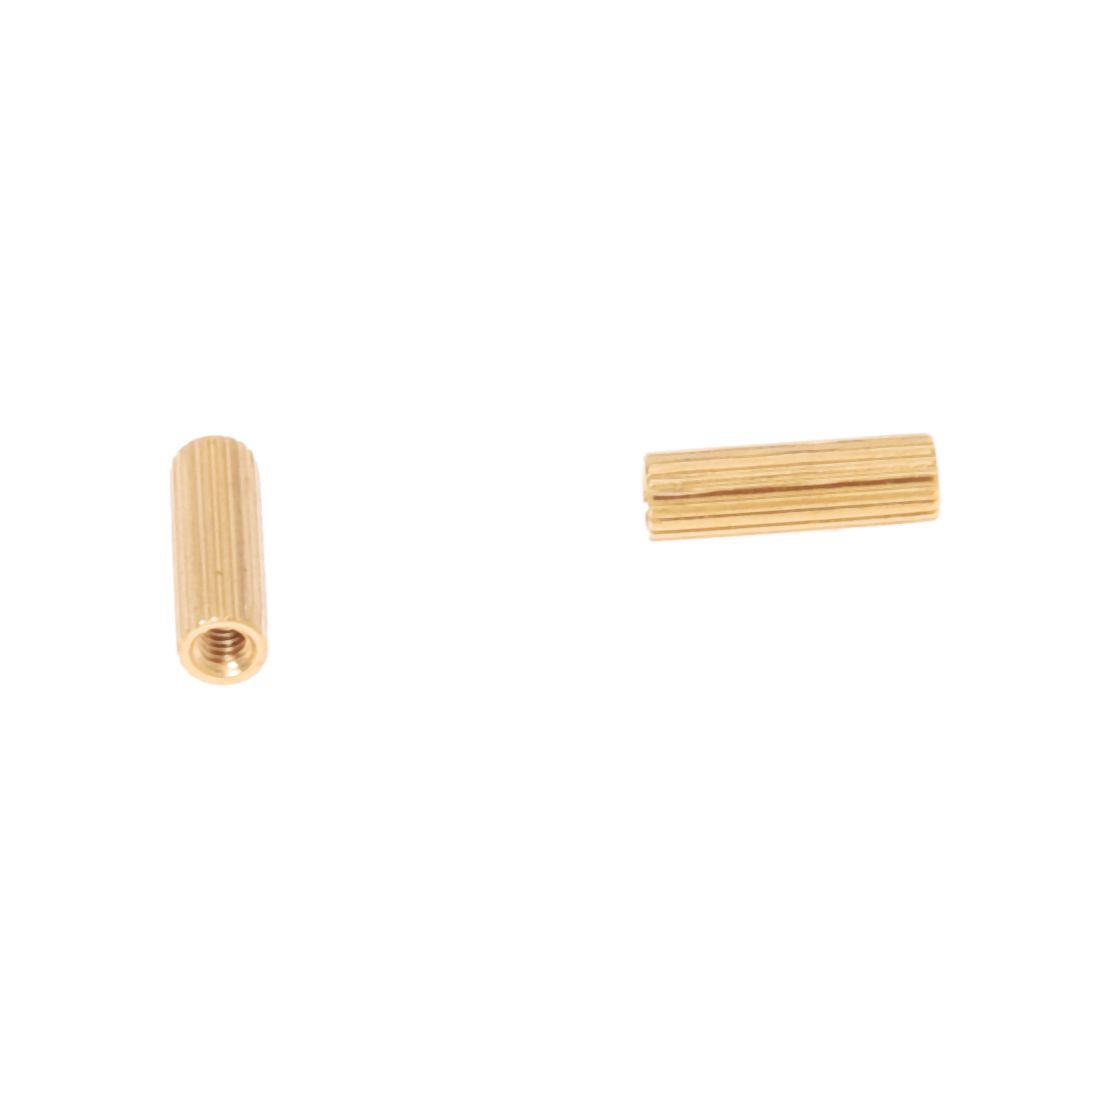 CNIM Hot 50 Pcs M2 Female Thread Cylindrical Brass Stand-off Support M2x10mm